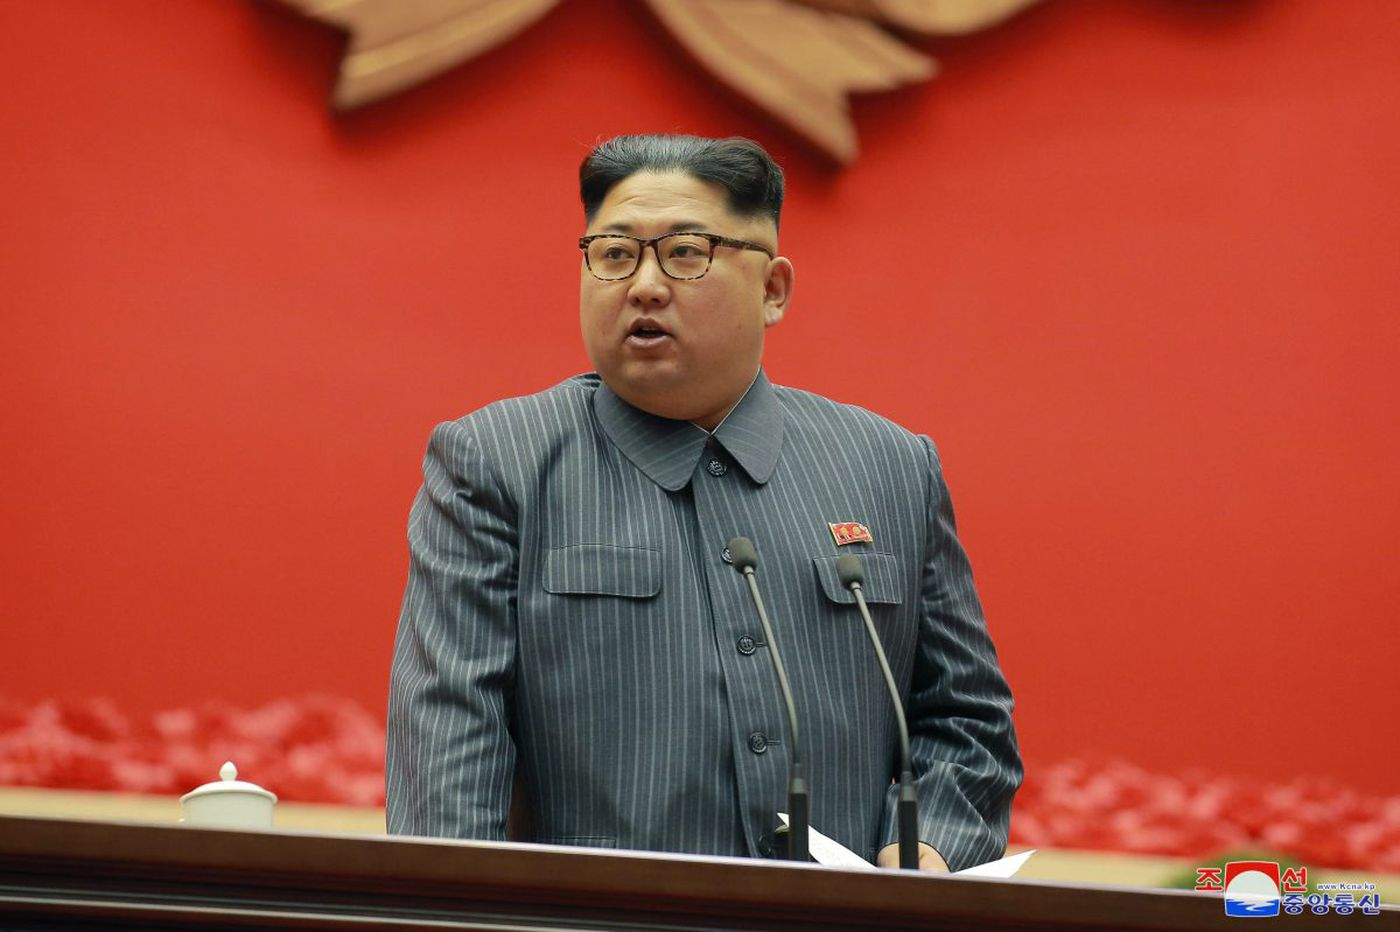 North Korea leader says he has 'nuclear button' but won't use unless threatened